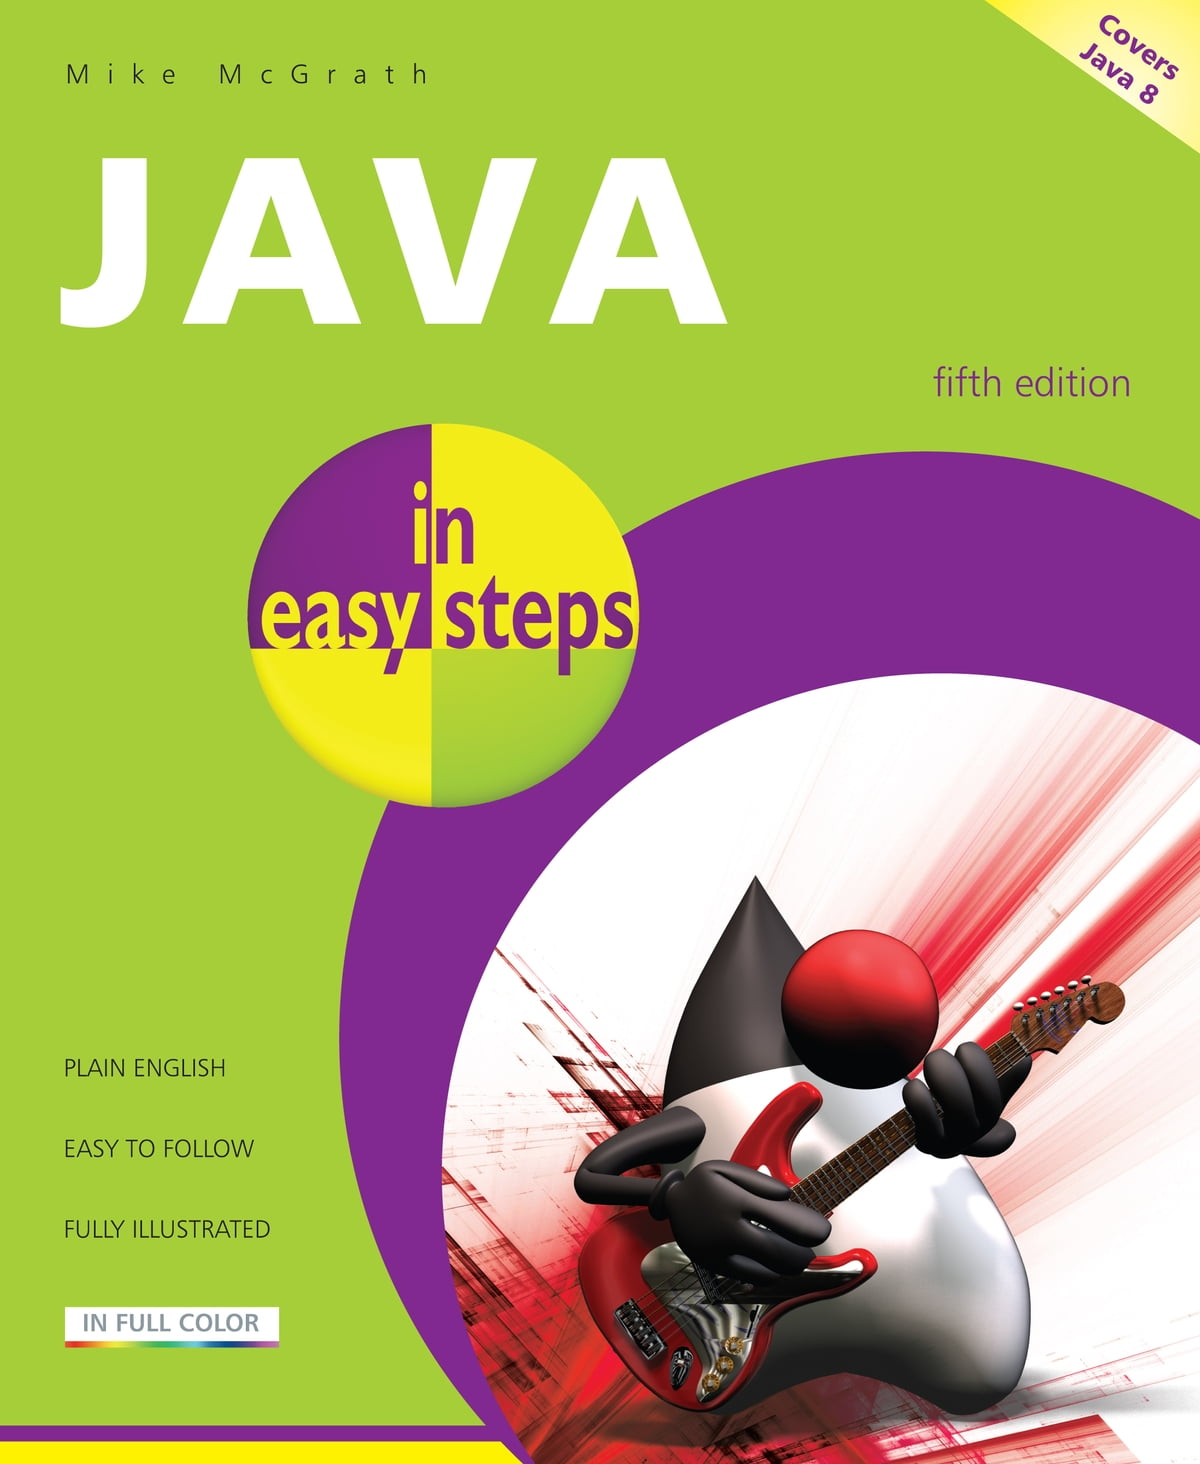 Java in easy steps, 5th edition eBook by Mike McGrath - 1230000394758 |  Rakuten Kobo